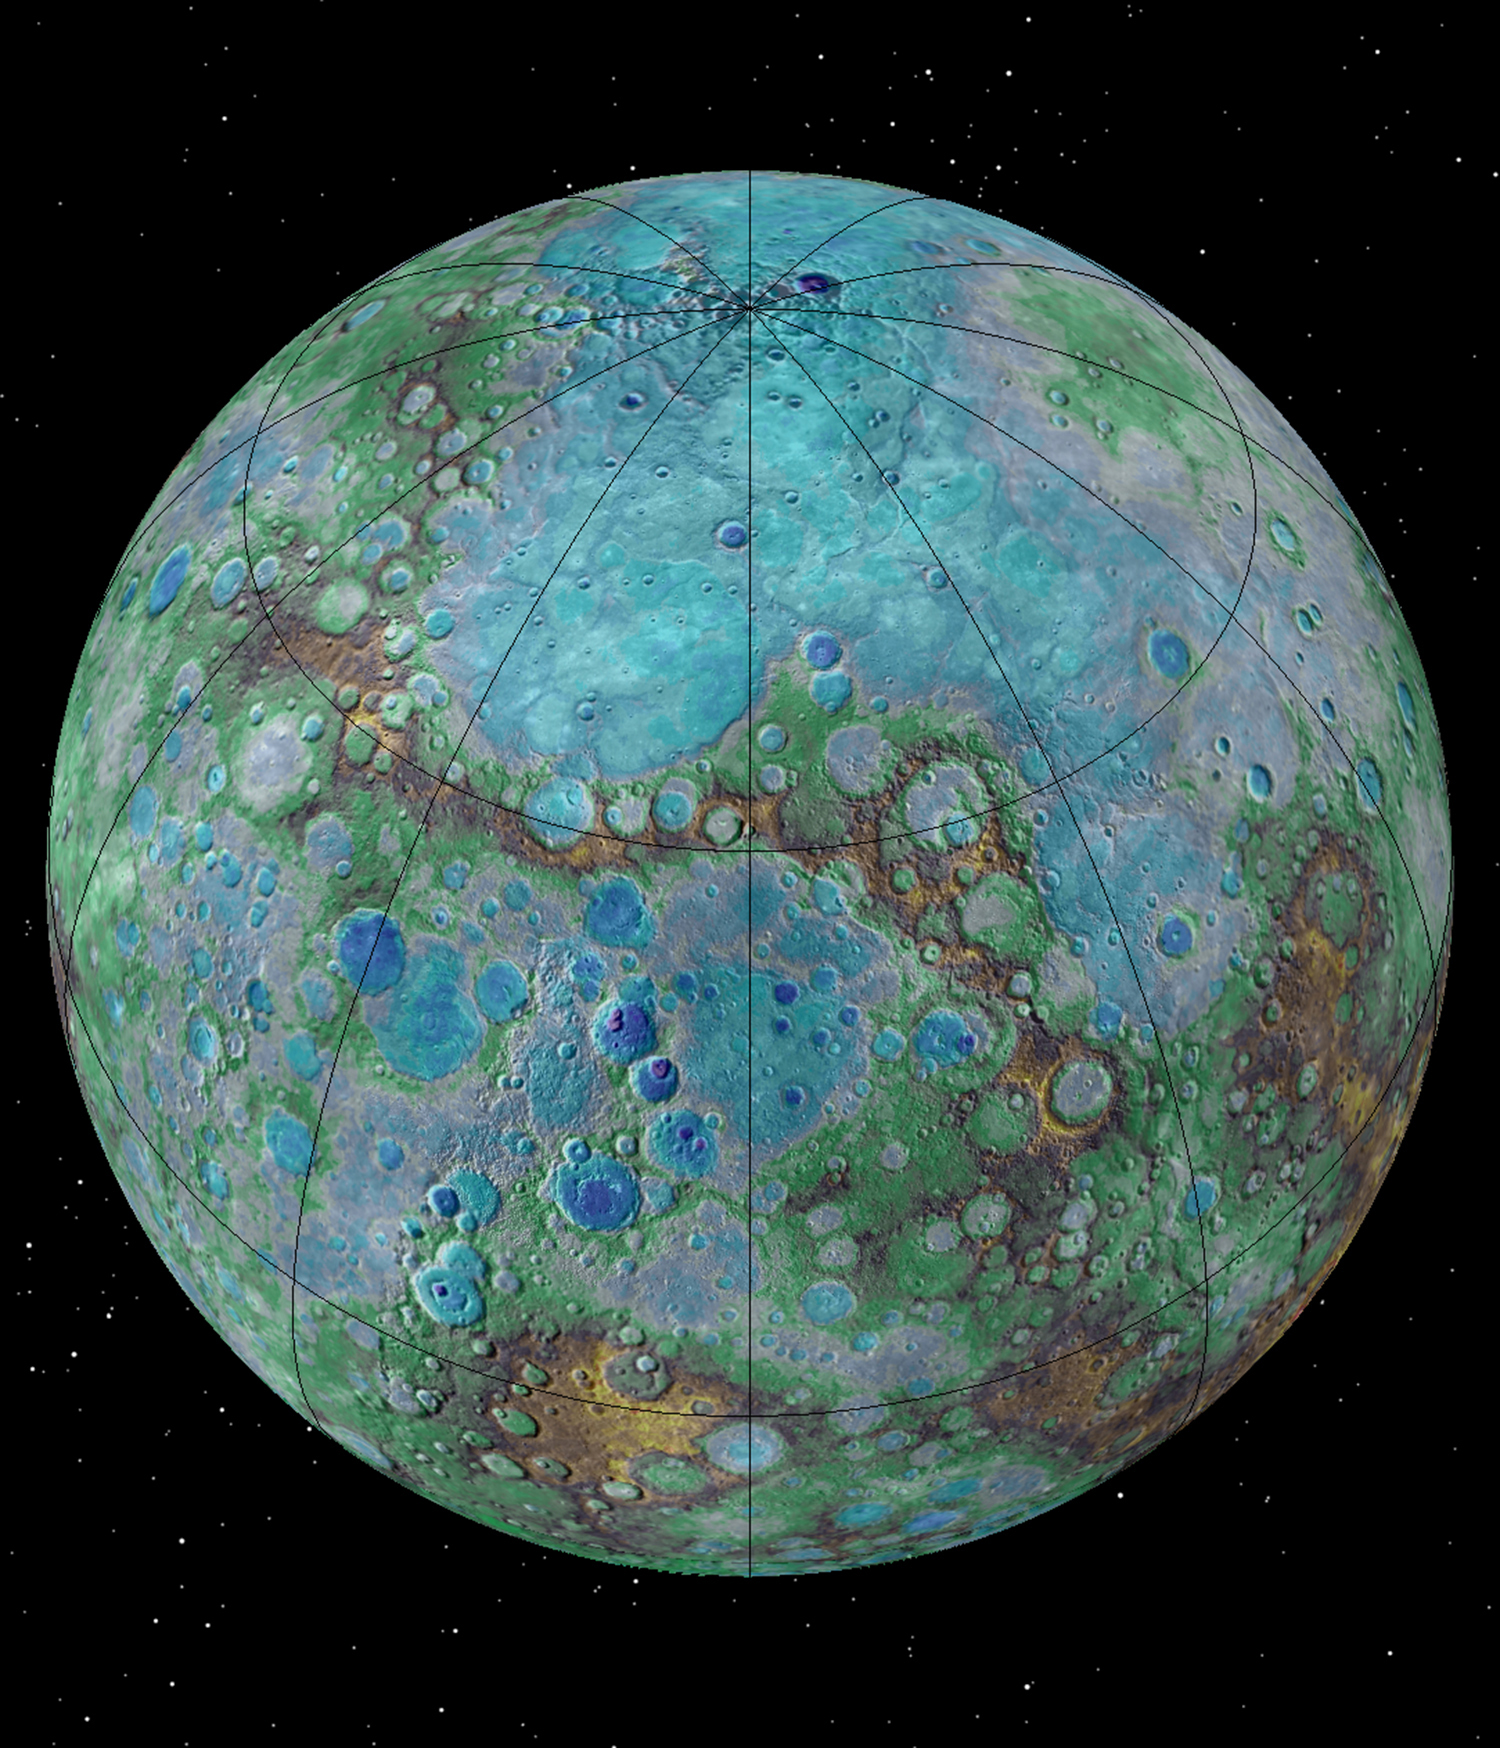 Mercury will join the Solar System's